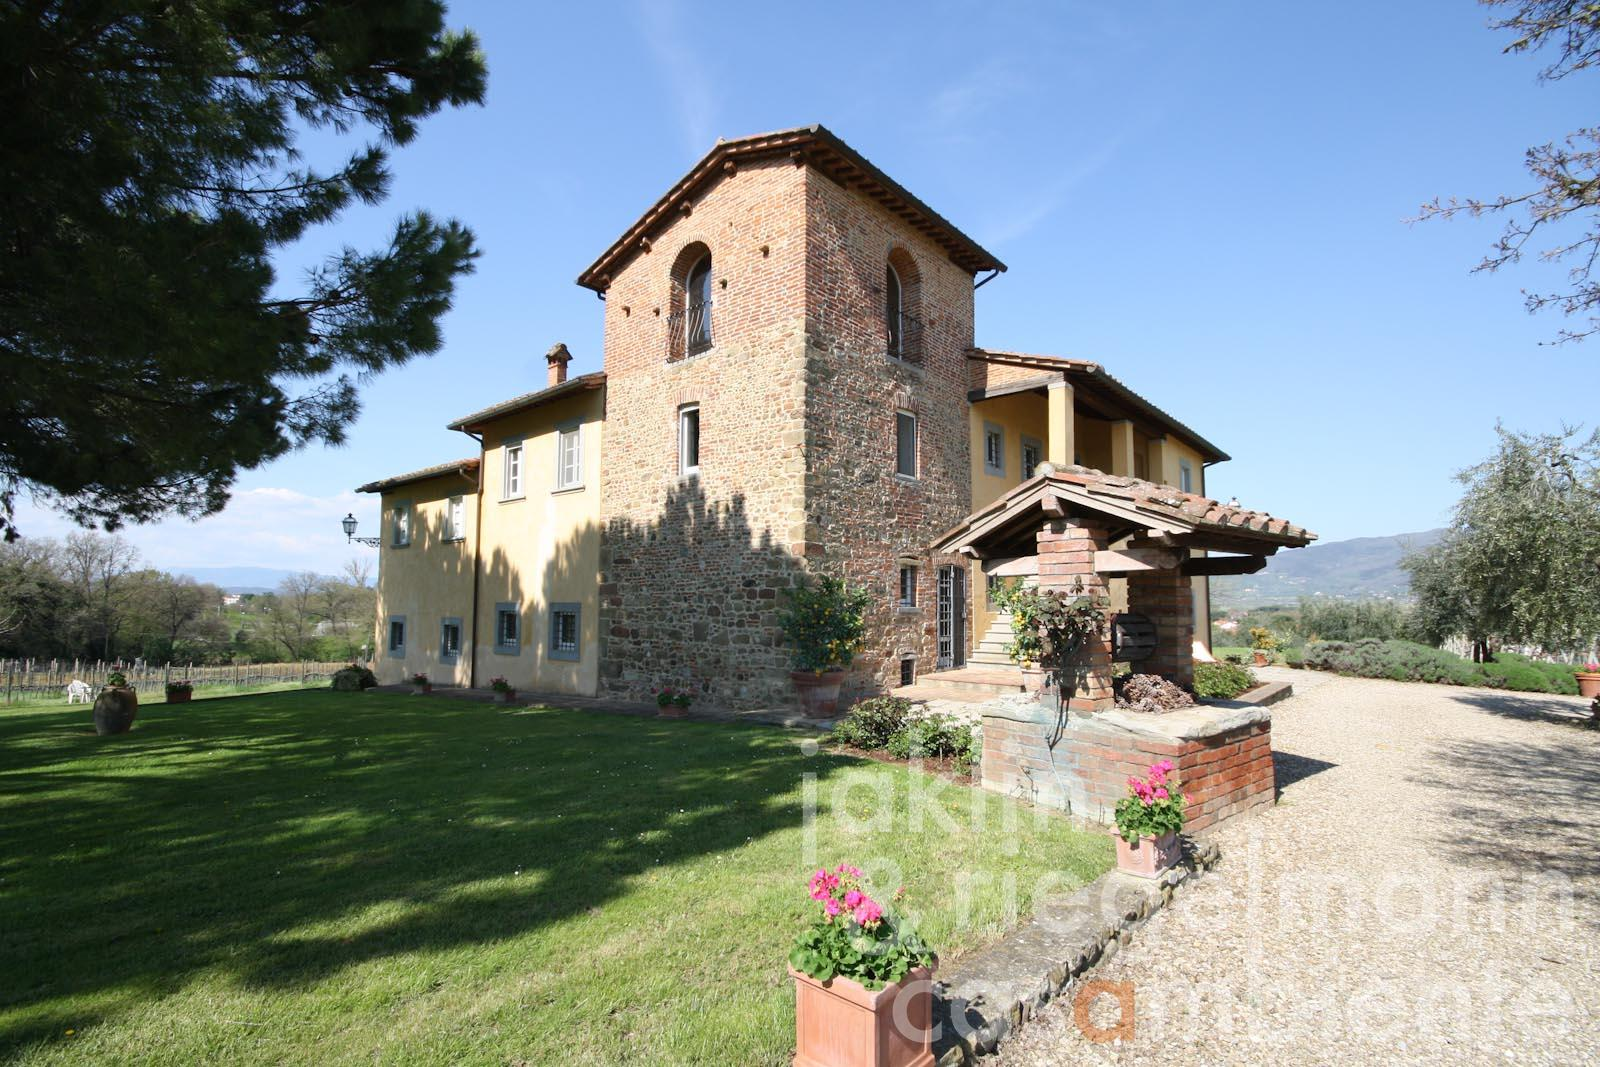 The country estate for sale with 12th century tower, olive grove and vineyard in Tuscany